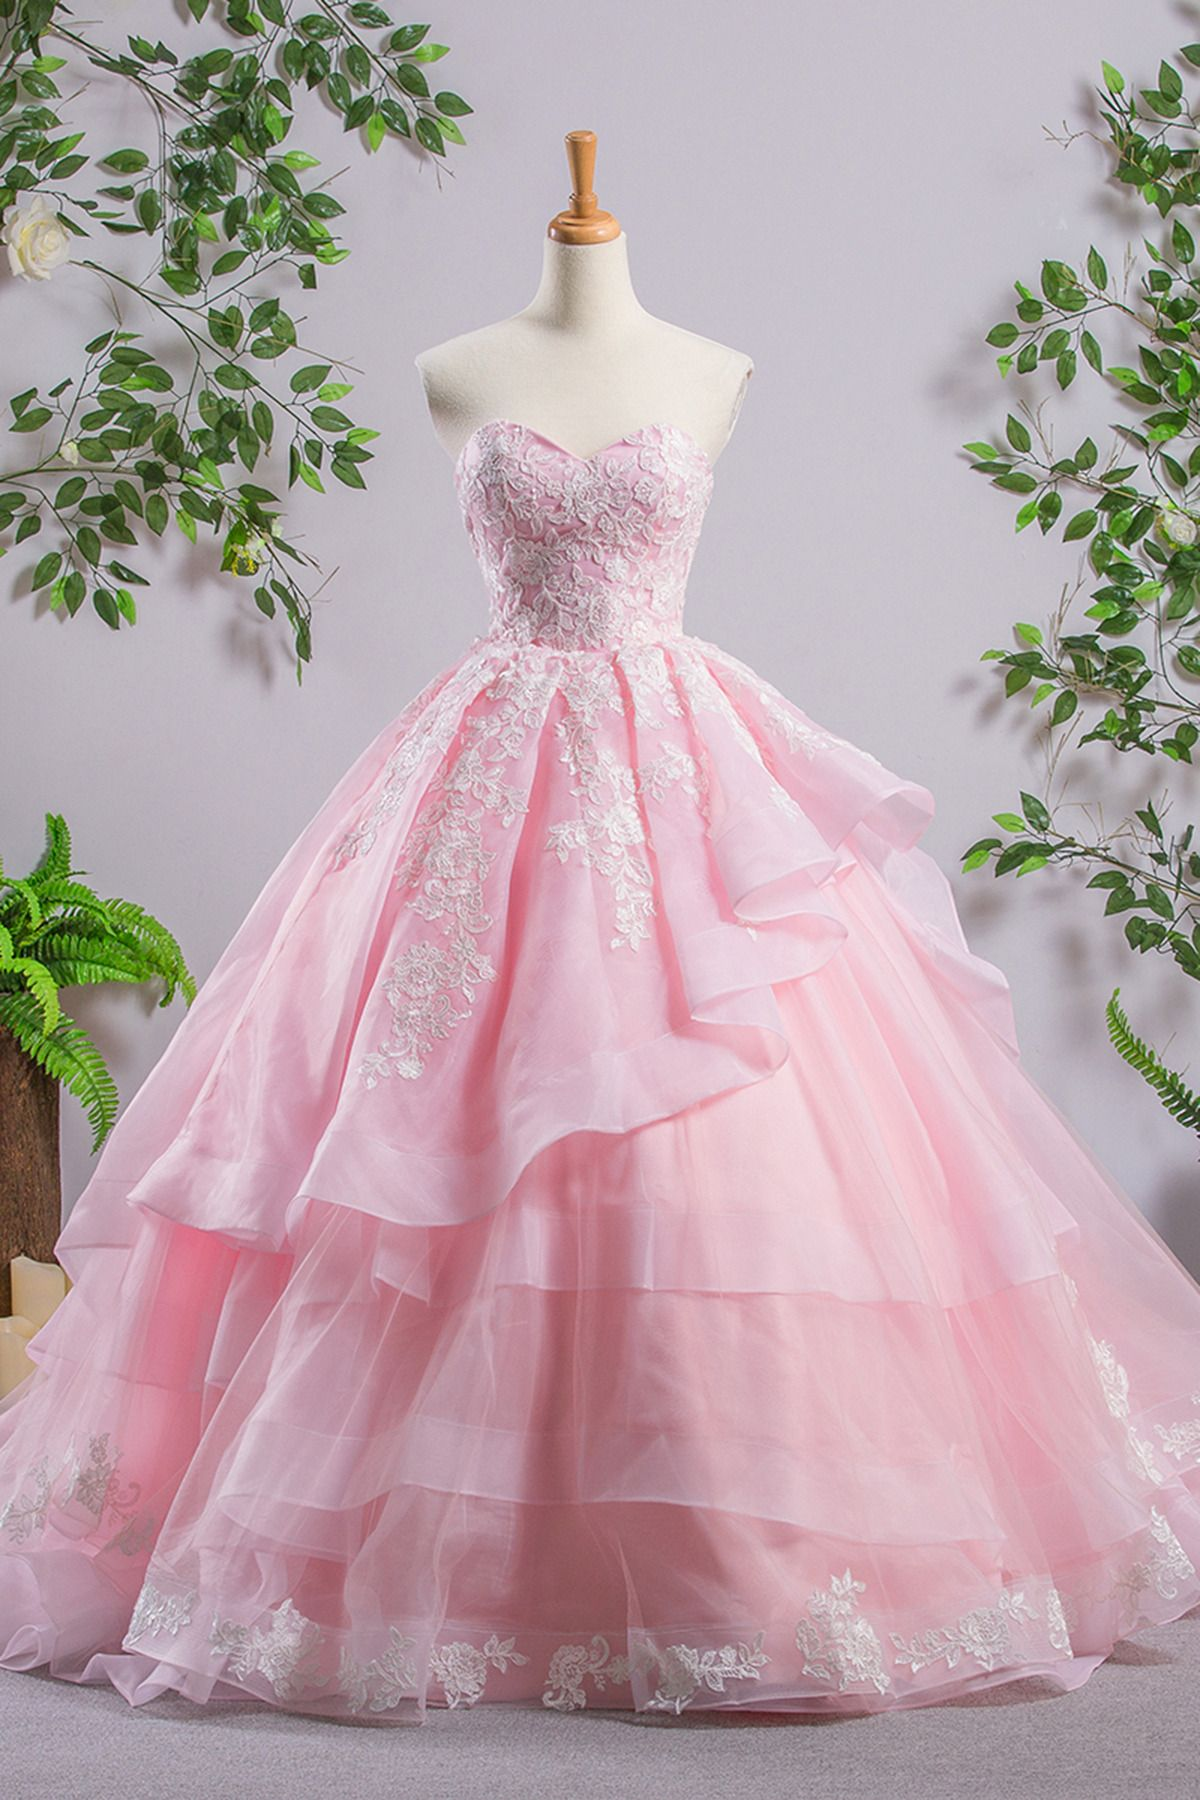 Z196 Sweetheart Ball Gown Pink Sexy Custom Made Charming Prom Dress,Prom Dresses - Sweet 16 dresses, Cheap evening dresses, Ball dresses, Evening dresses prom, Sweet dress, Pink prom dresses - Welcome to our store  We will provide best service and product for you  Please contact us if you need more information than it is stated below   We could make the dresses according to the pictures came from you,we welcome retail and wholesale  AConditionbrand new ,column ,mermaid or Aline style, LengthFloorlength FabricTulle Satin Lace Colorcolor free ,all the colors on our color chart are available SizeStandard size or custom size   ClosureLaceup LiningBoned and Fully Lined  PackingDelicate box package or plastic bags  It usually take 725 working days to finish the dress,the shipping time is 315 days   B  Color All color are available from our color chart   Since computer screens have chromatic aberration, especially between CRT screen and LCD screen, we can not guarantee that the color of our products will be exactly the same with the photographs you saw  If you need any other color or special requirement, please contact me by email and I will take care of your request personally in two days  C Size unit ( centimeters or inches)we can make the dress with standard size and custom order,if you need custom sizes,please measure below measurements 1 Bust       inches 2 Waist      inches 3 Hips         inches 4 Shoulder to Shoulder from back       inches 5 Shoulder to nipple       inches 6 Shoulder to floor through nipple no shoes         inches 7 Full height from top head to floor no shoes       inches 8 the dress shoes height       inches send the measurements to me as soon as you payment   D Return Policy We will accept returns if dresses have quality problems, wrong delivery time, we also hold the right to refuse any unreasonable returns, such as wrong size you gave us or standard size which we made right, but we offer free modify  Please see following for the list of quality issues that are fully refundable for Wrong Size, Wrong Color, Wrong style, Damaged dress 100% Refund or remake one or return 50% payment to you, you keep the dress  In order for your return or exchange to be accepted, please carefully follow our guide 1  Contact us within 2 days of receiving the dress (please let us know if you have some exceptional case in advance) 2  Provide us with photos of the dress, to show evidence of damage or bad quality, this also applies for the size, or incorrect style and colour etc  sequin prom dresses 3  The returned item must be in perfect condition (as new), you can try the dress on, but be sure not to stretch it or make any dirty marks, otherwise it will not be accepted  4  The tracking number of the returned item must be provided together with the reference code issued  5  If you prefer to exchange dresses, then a price difference will be charged if more expensive  6  You are required to pay for the shipping fee to return or exchange the dress  7  When you return the package to us, please pay attention to the following points, if not, customers should pay for the duty we put all of our energy and mind into each dress, each of our dress are full of love, our long experience and skilled craftsmanship keep less return rate till now, but if there are our problems, we could return all your payment, for more details, please see our FAQ  E About Feedback Thanks so much for your bidding, it will be more appreciated if you can leave us 5 STAR positive feedback if you feel that the item and our service is good for you  Great feedback will be left to you too  If any situation, you receive an unsatisfied item, please just contact us immediately, we will try to solve the problem for you  But keep in mind that any problem please do contact us first, we are really hope that you can have a happy experience from this transaction